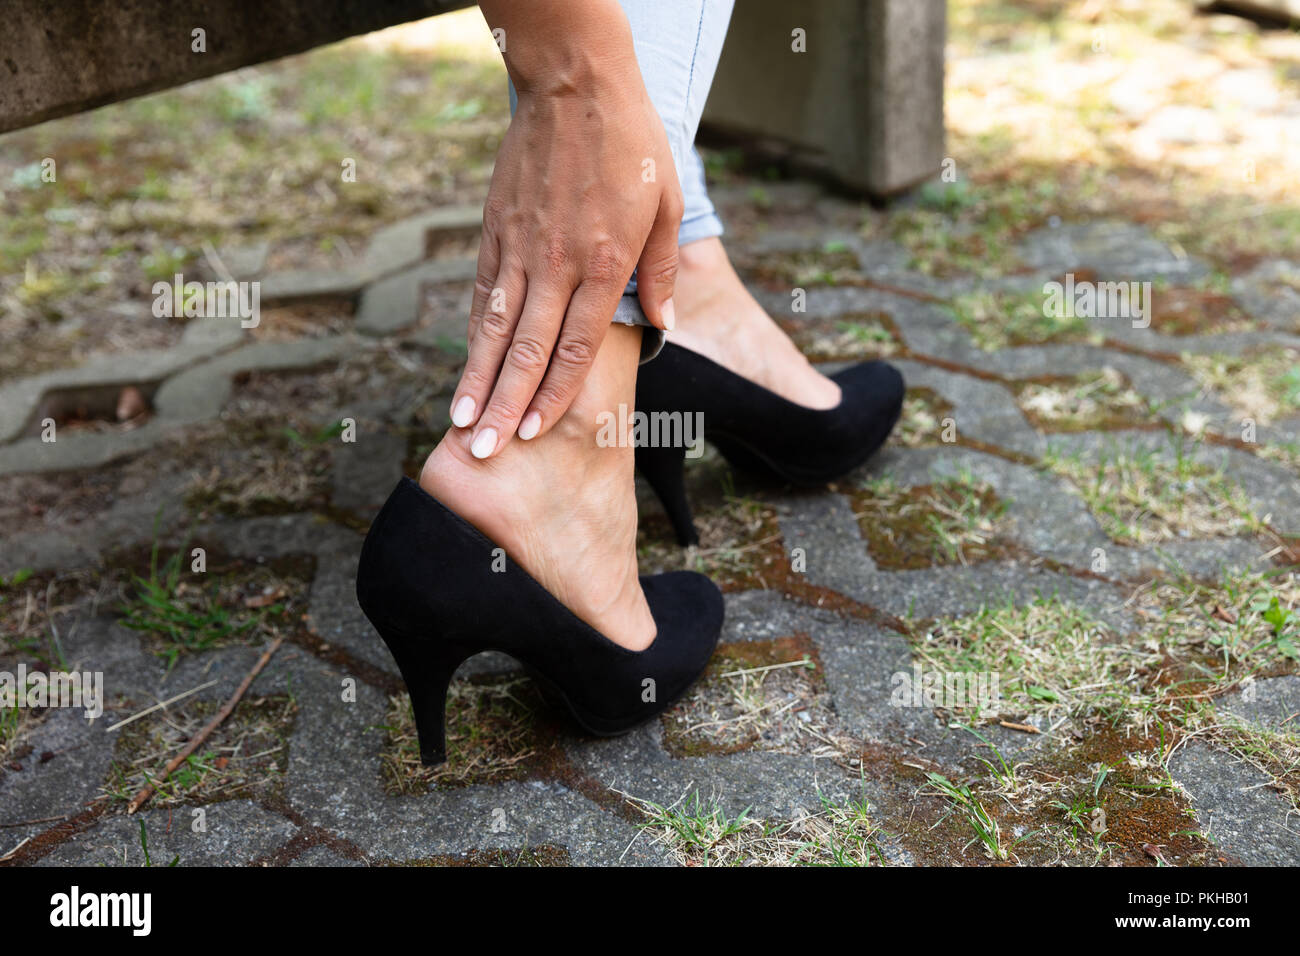 Woman Removing High Heels Touching Her Ankle - Stock Image